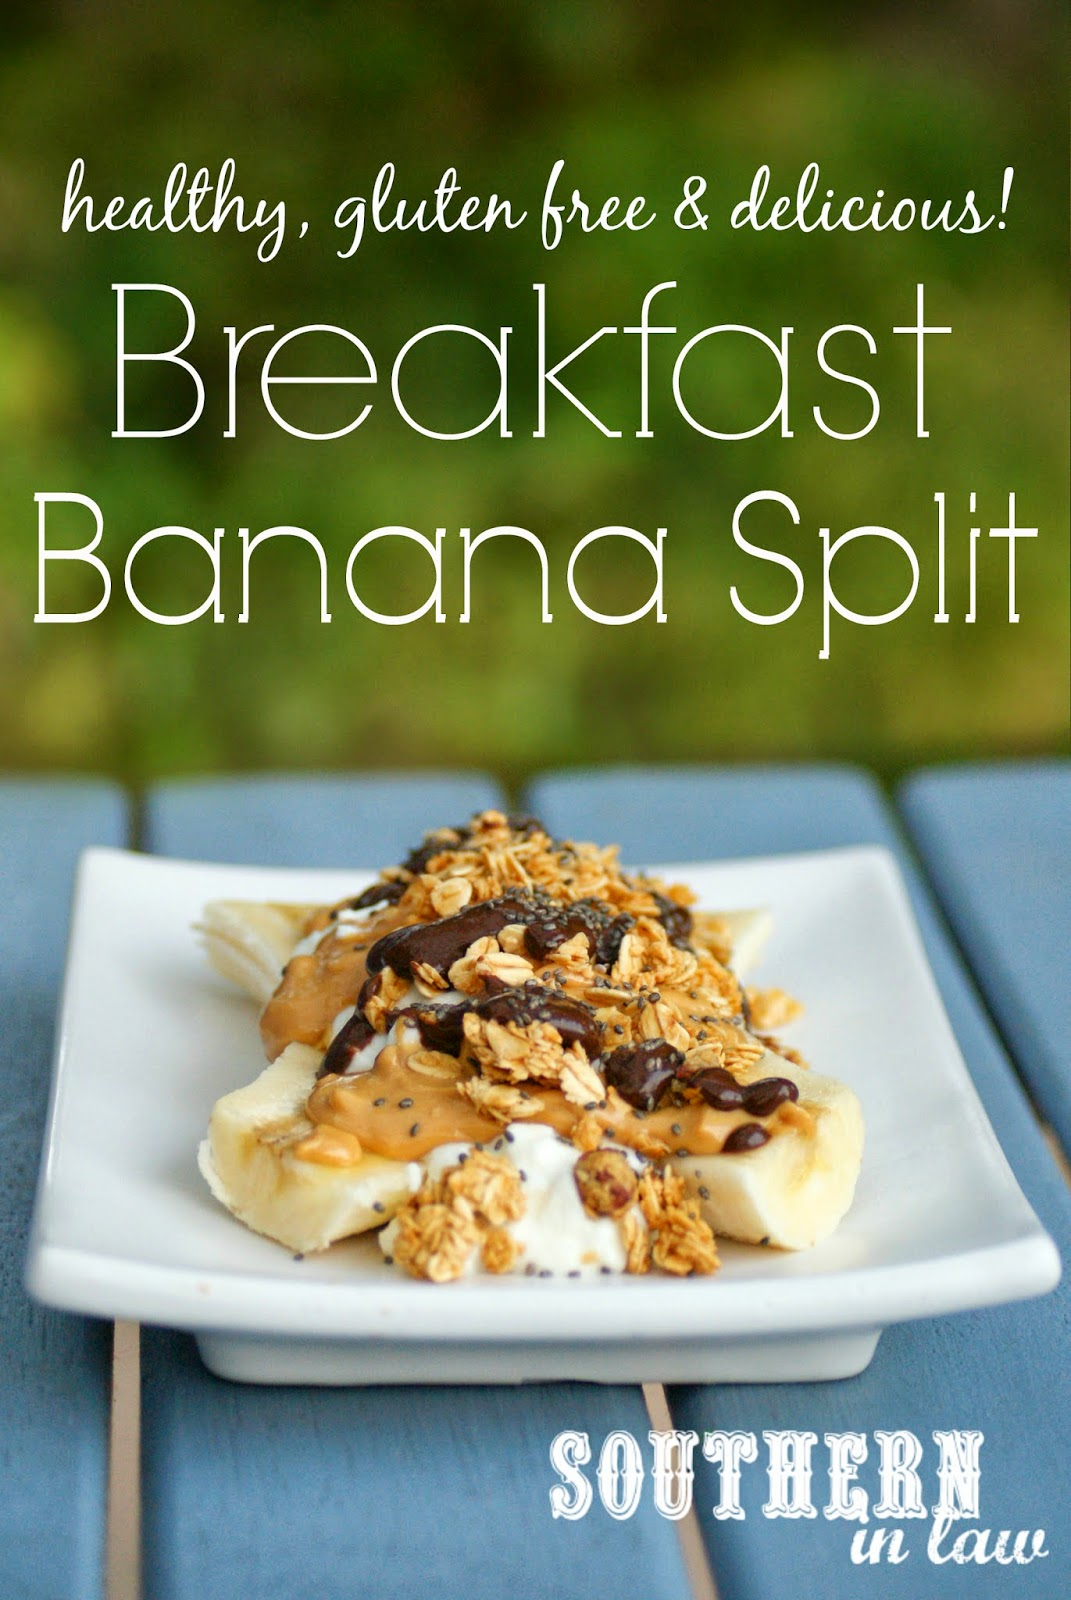 Healthy Banana Split Recipe - Gluten free, low fat, clean eating friendly, sugar free - Healthy Breakfast Recipes